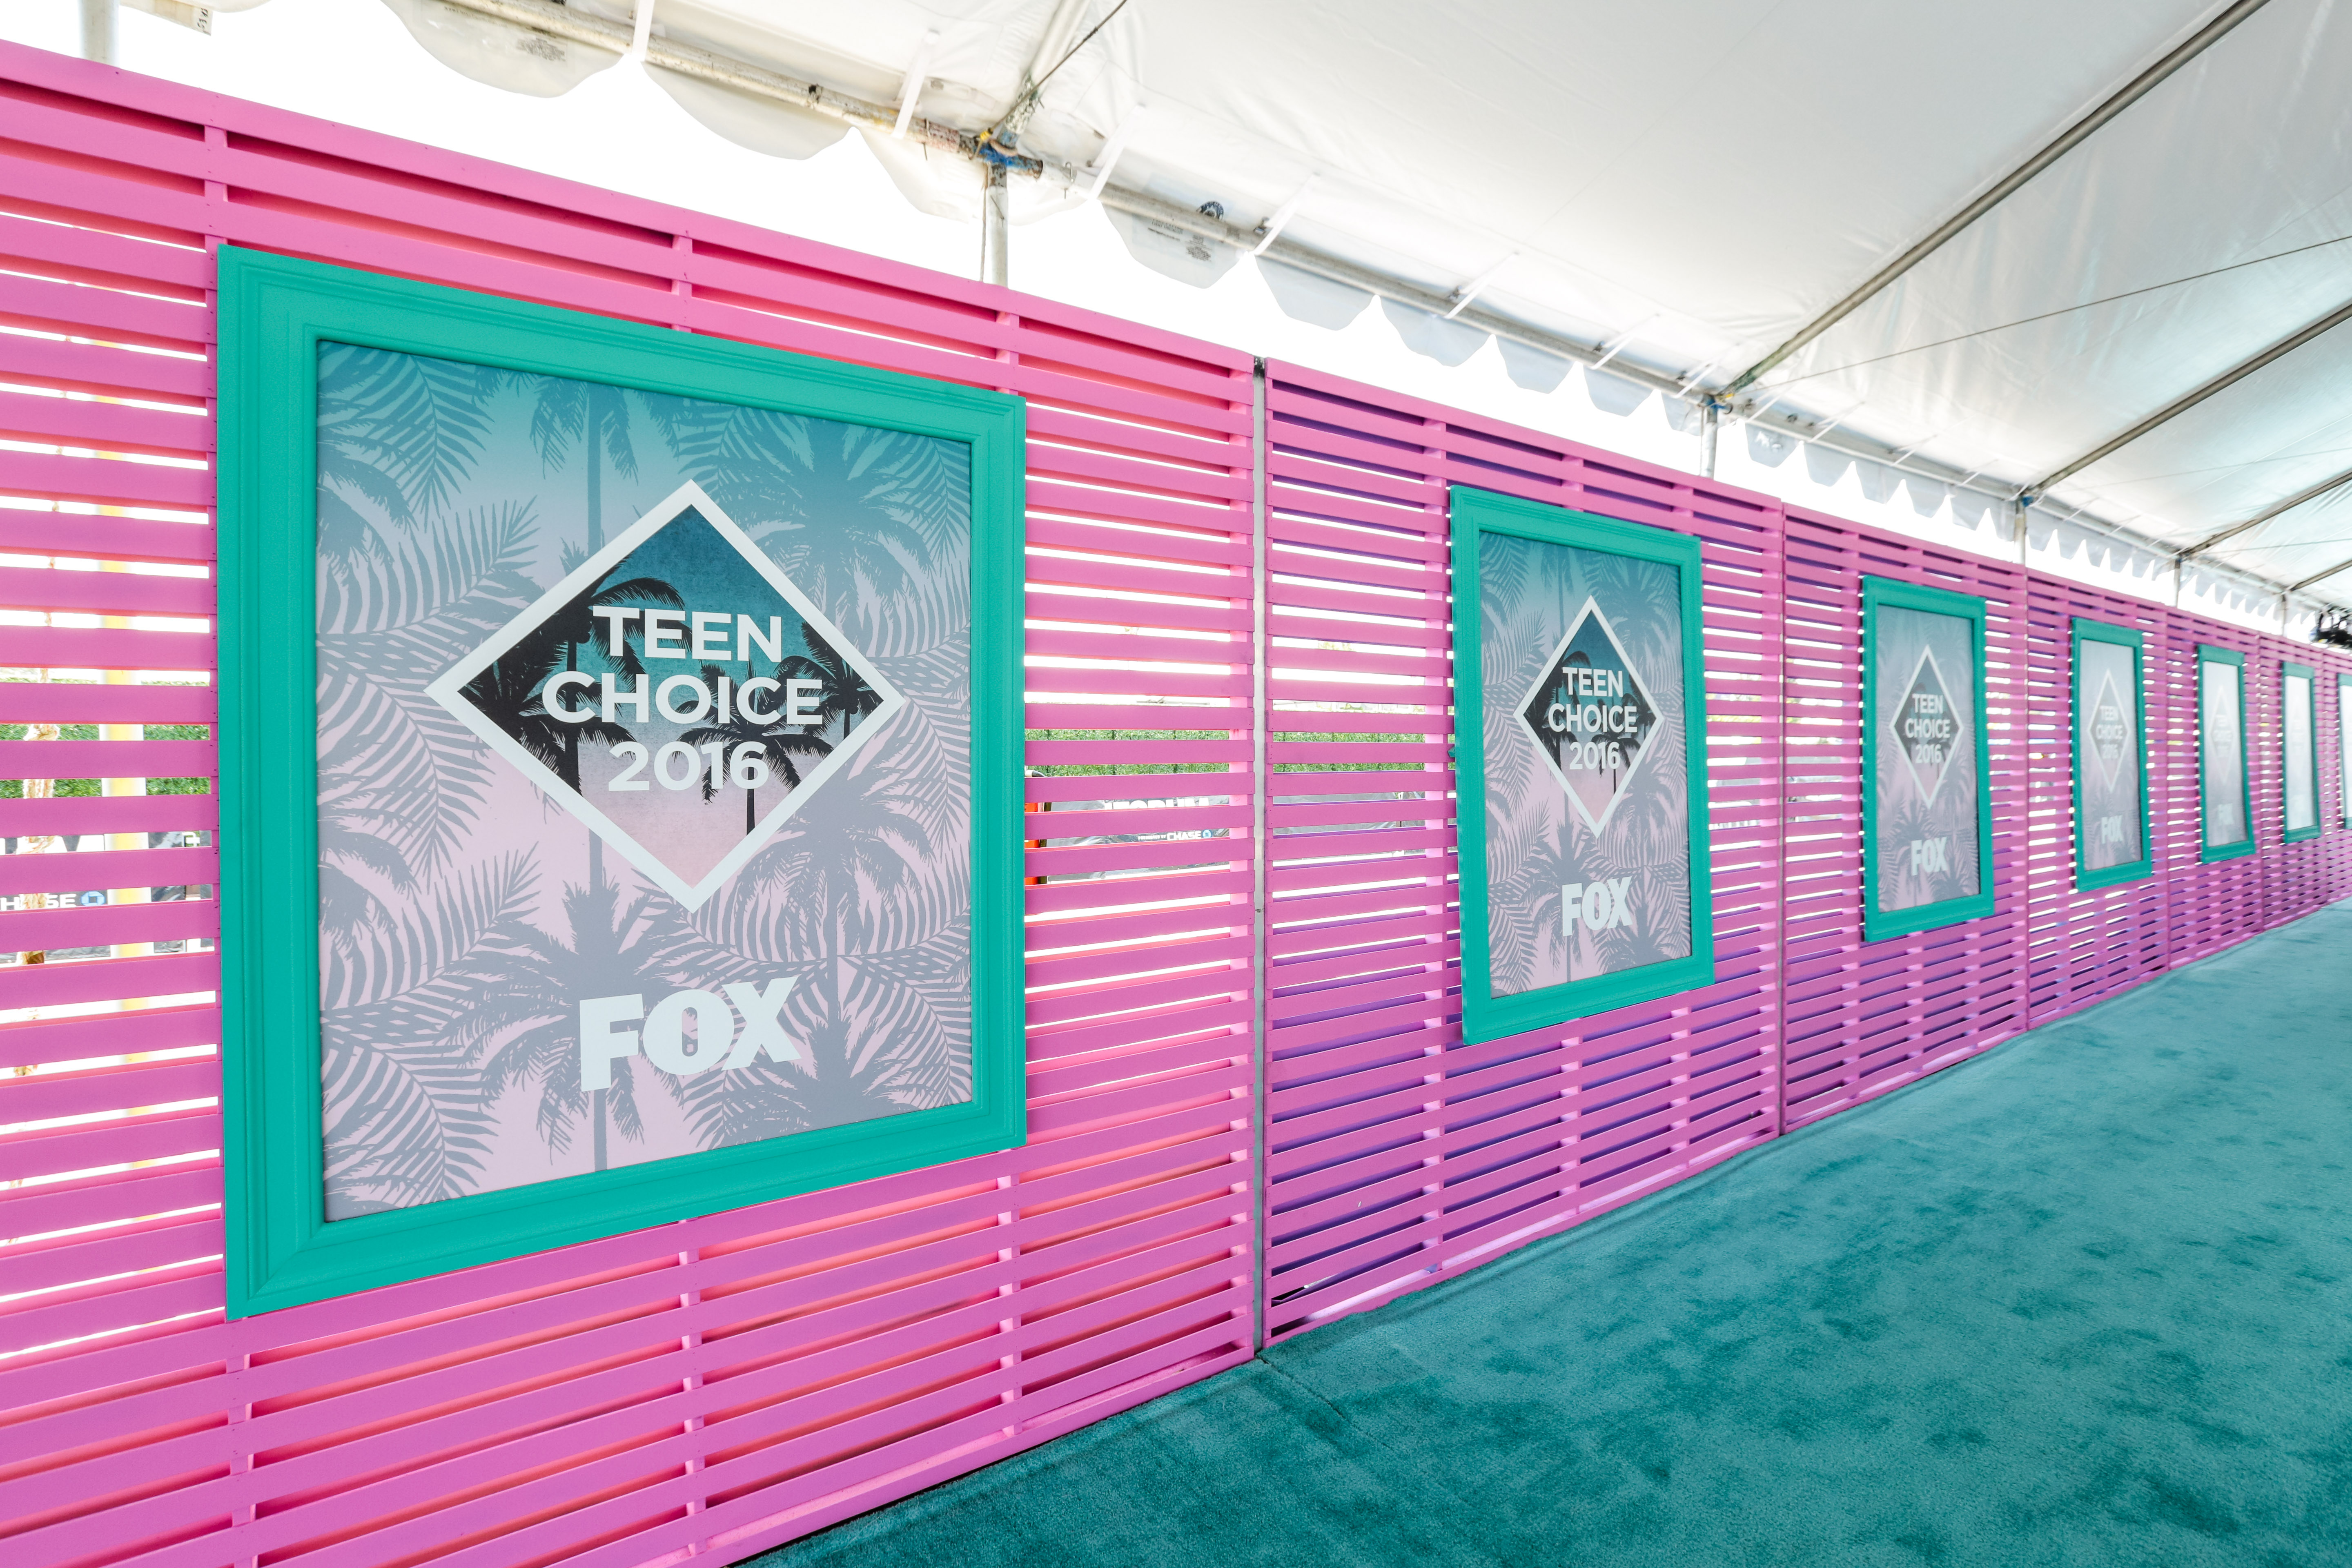 Teen Choice Awards 2016 - Geffen Events